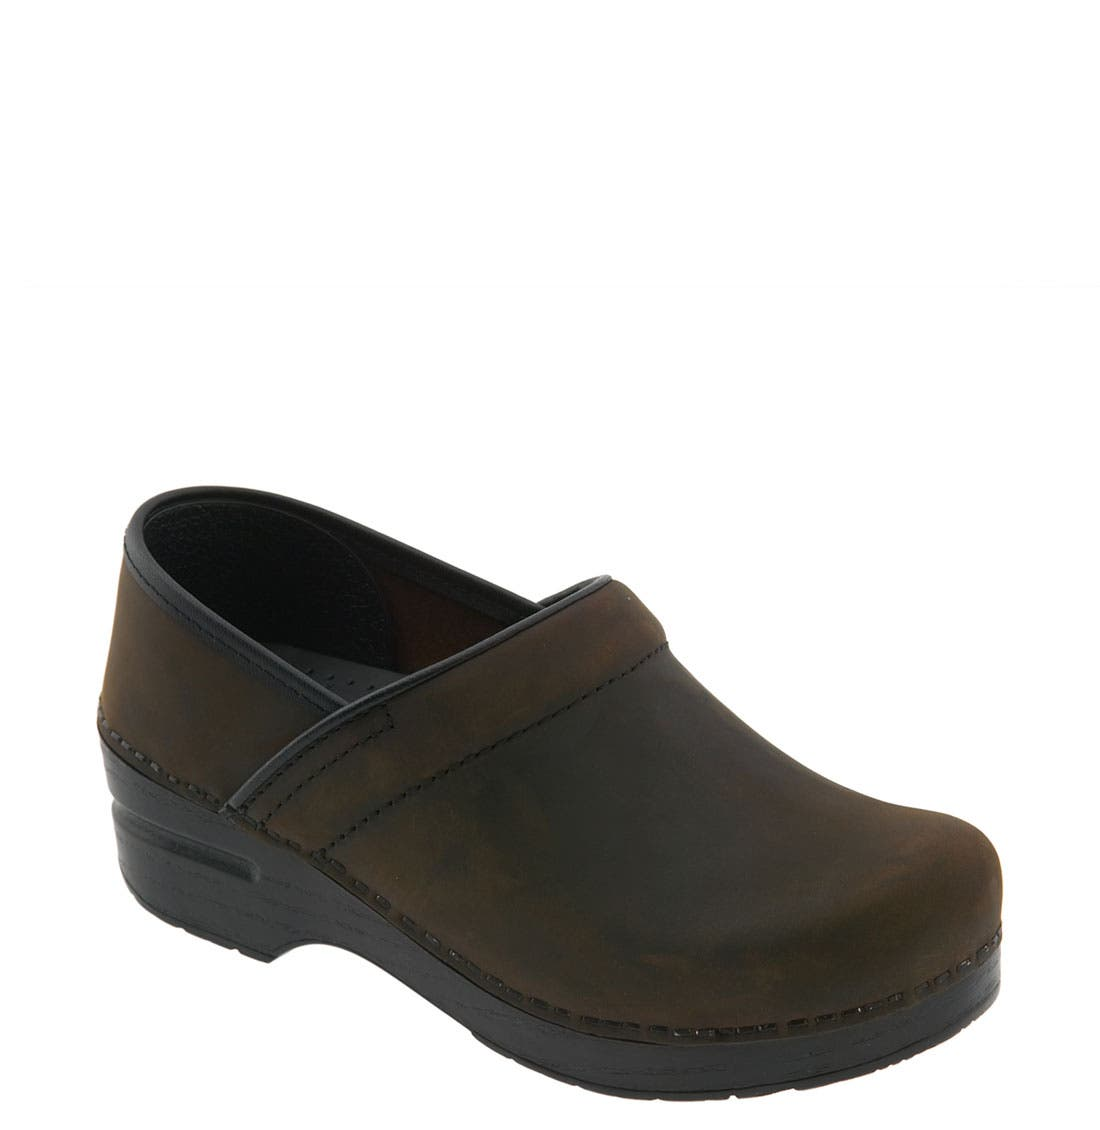 Alternate Image 1 Selected - Dansko 'Professional - Narrow' Oiled Leather Clog